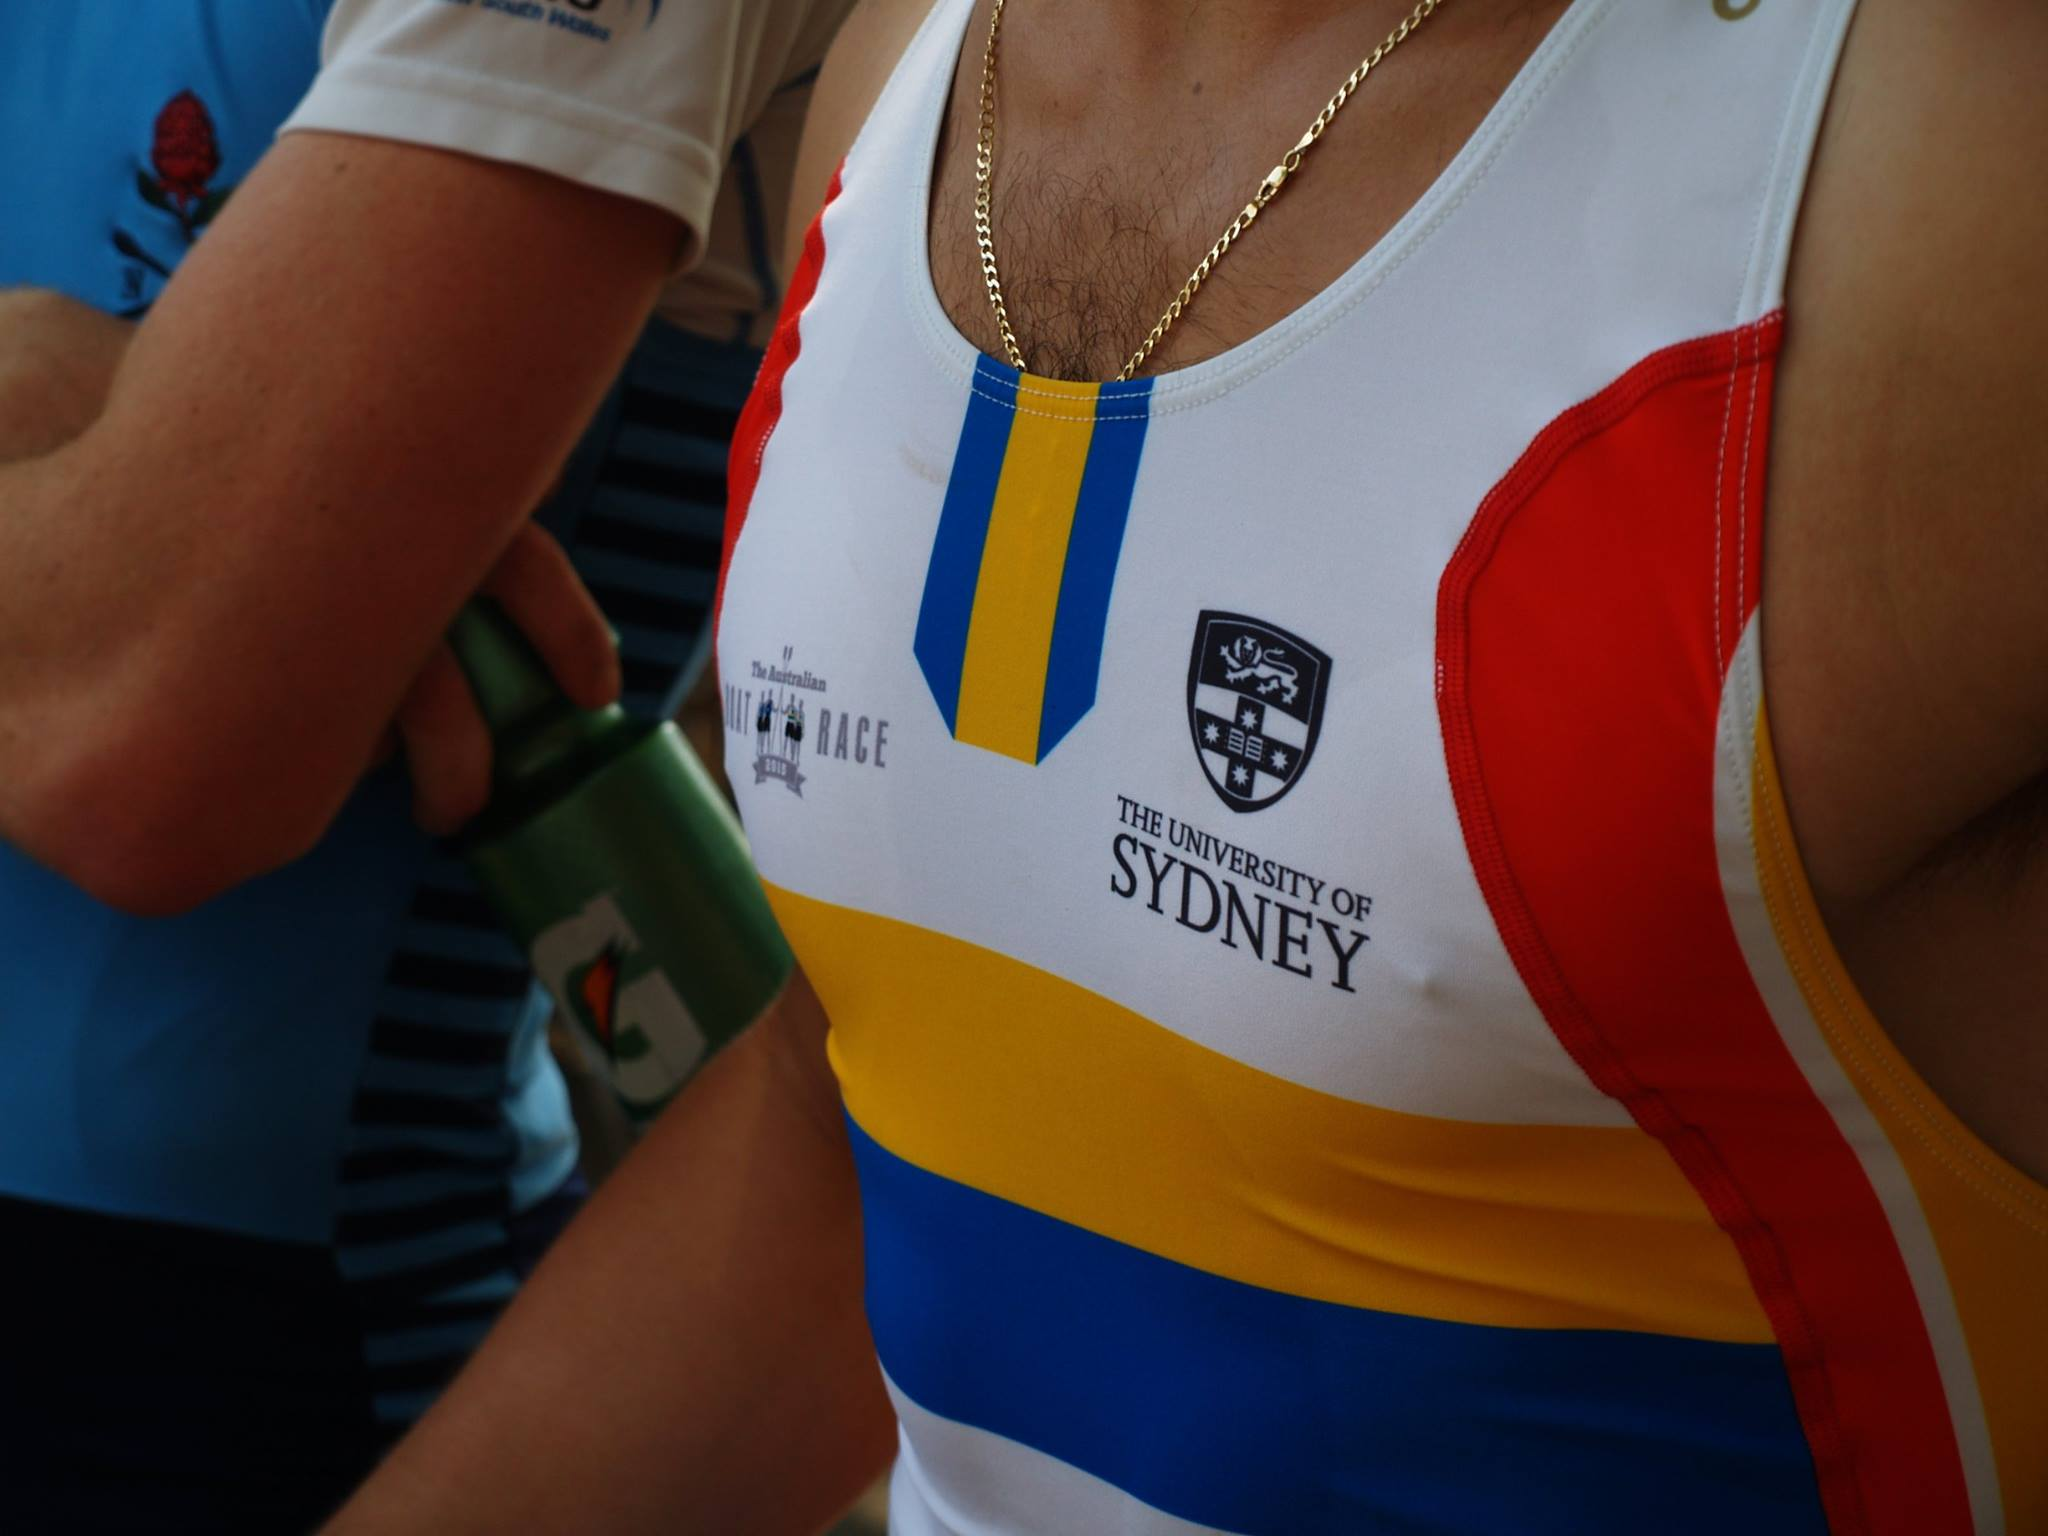 proud-to-wear-the-cols-of-Sydney-University-1.jpg